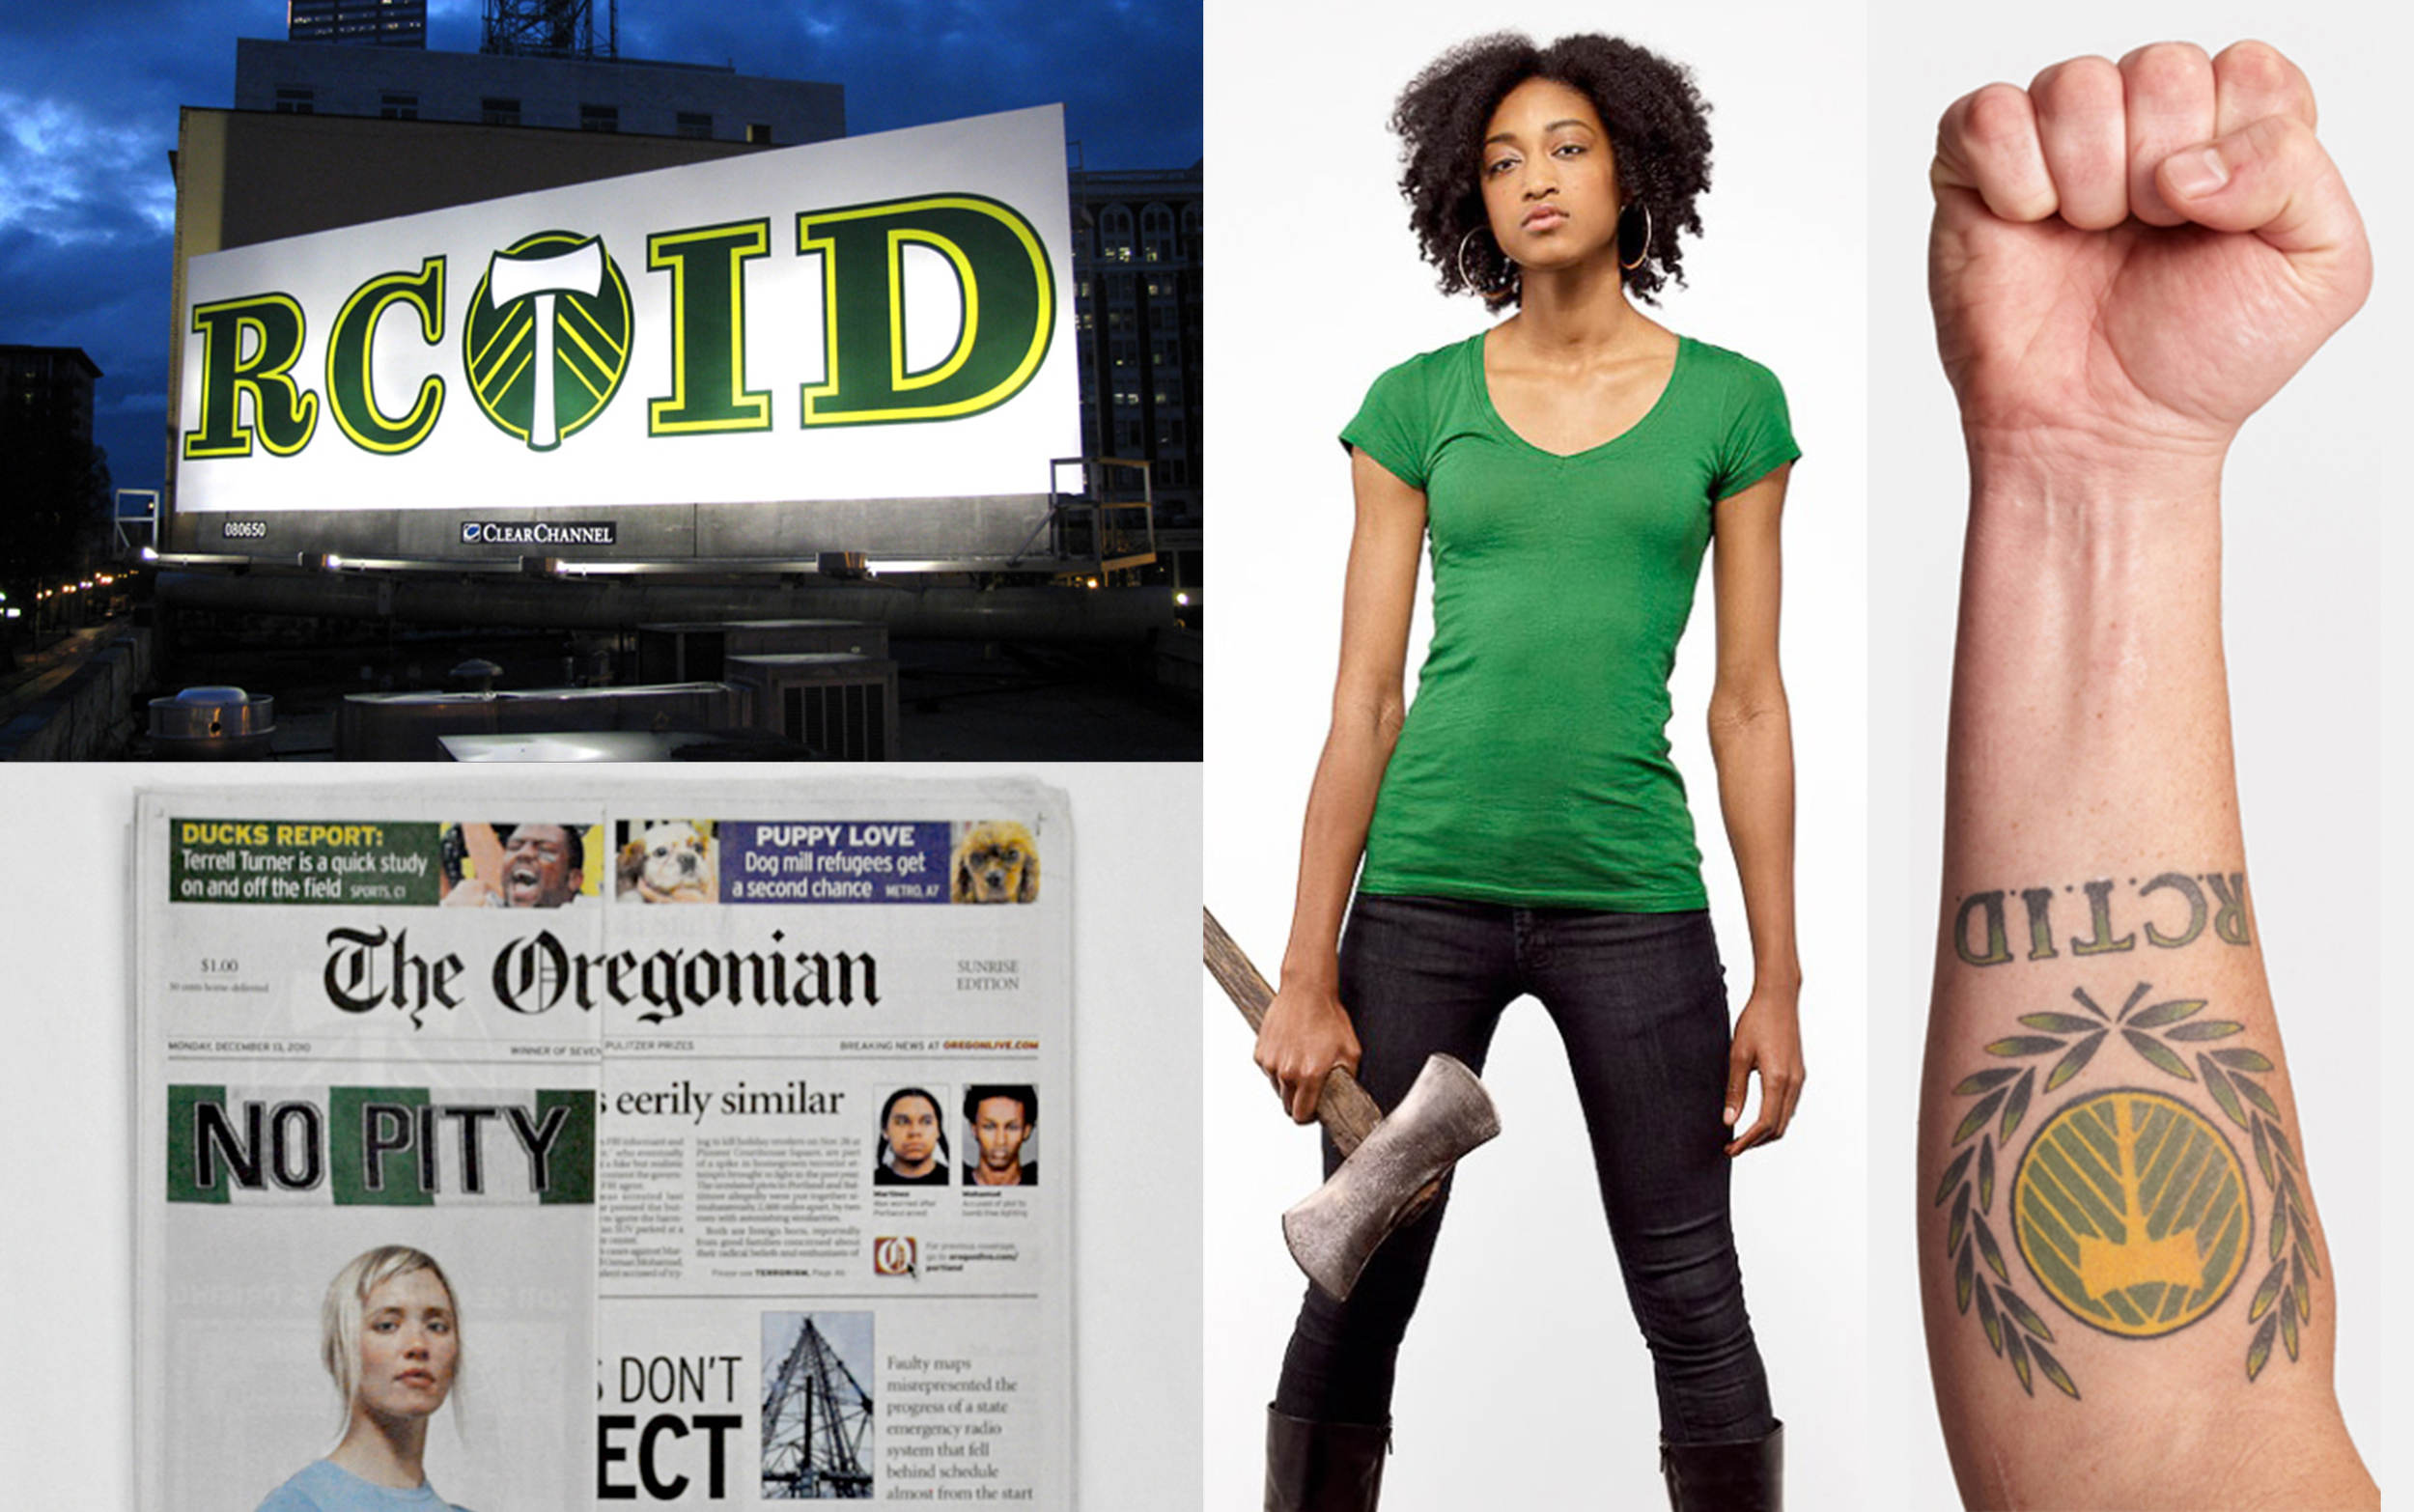 Timbers_billboards.jpg